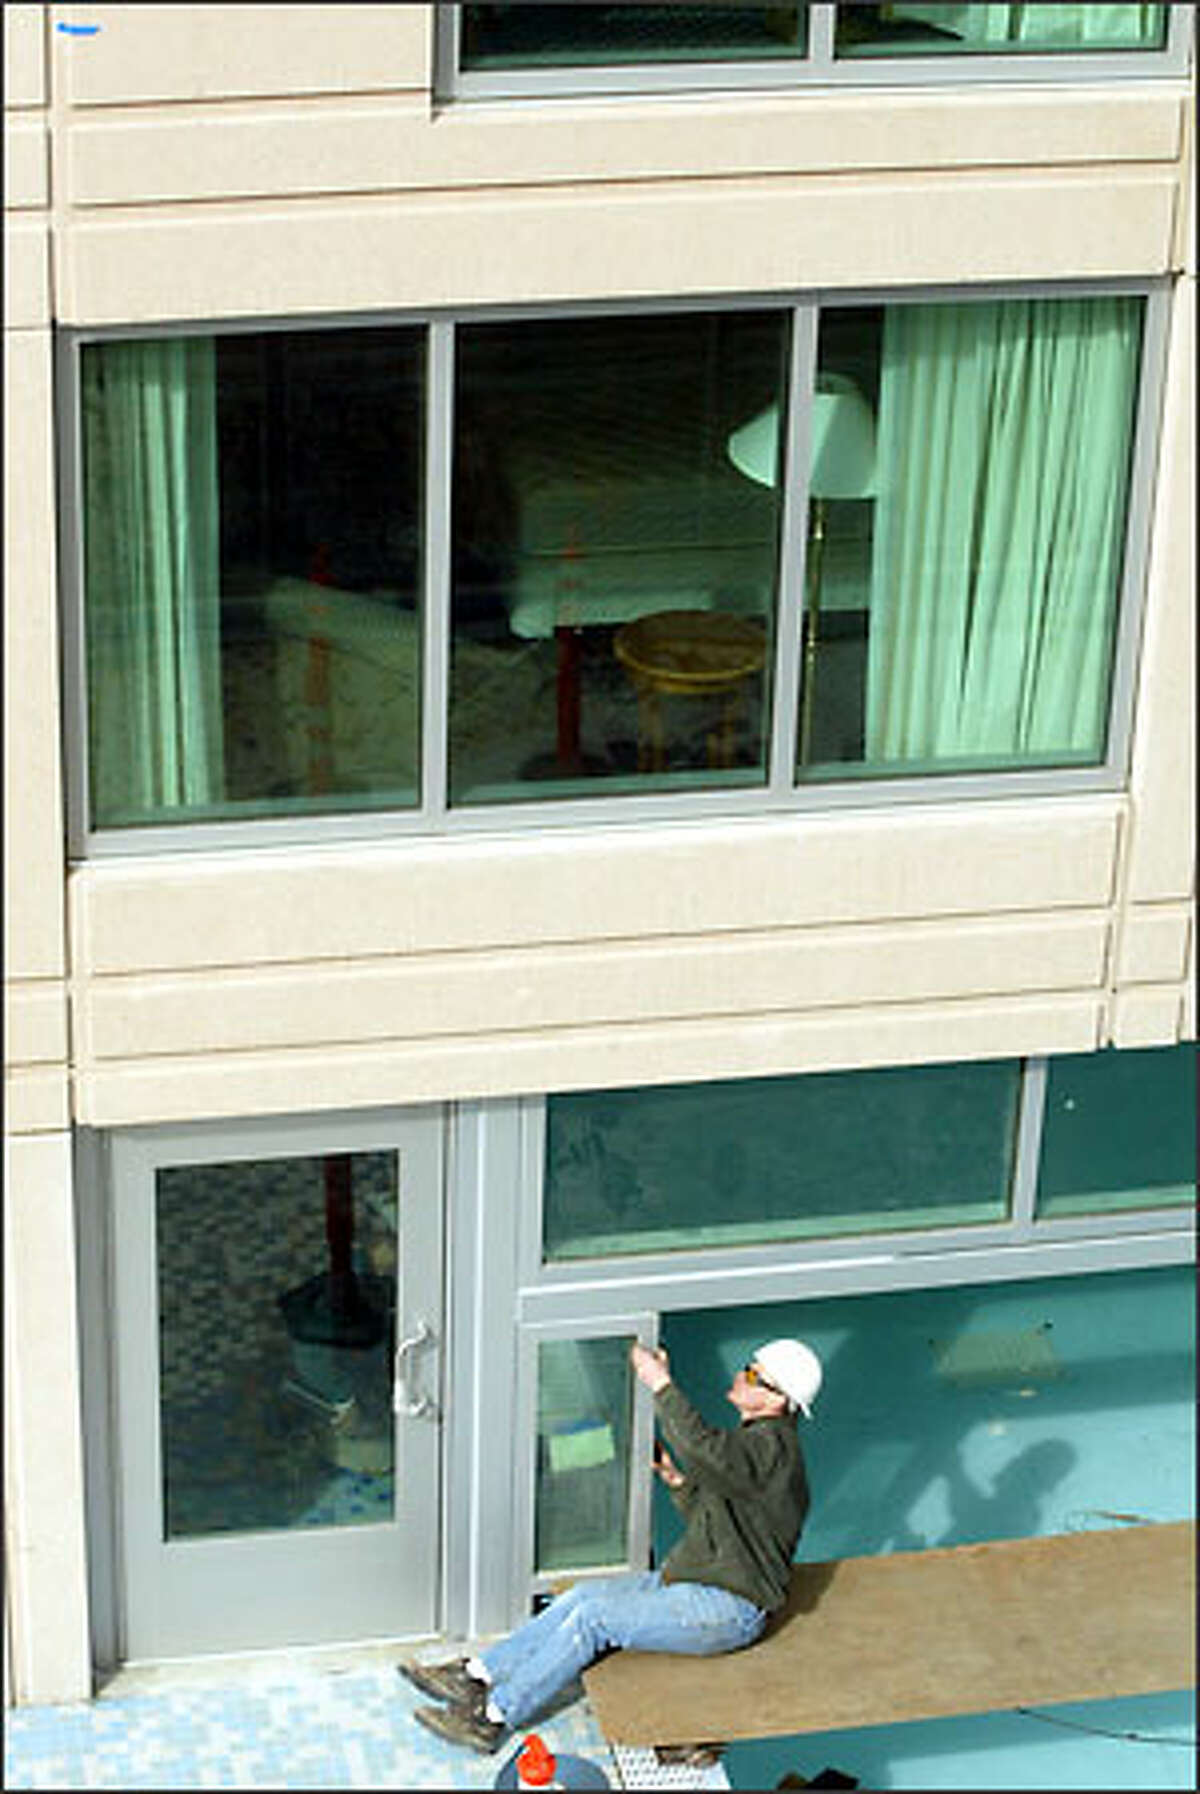 A worker who didn't want to be identified puts stripping around a window next to the indoor-outdoor swimming pool being built for the Seattle Marriott Waterfront Hotel, which is scheduled to open in April.